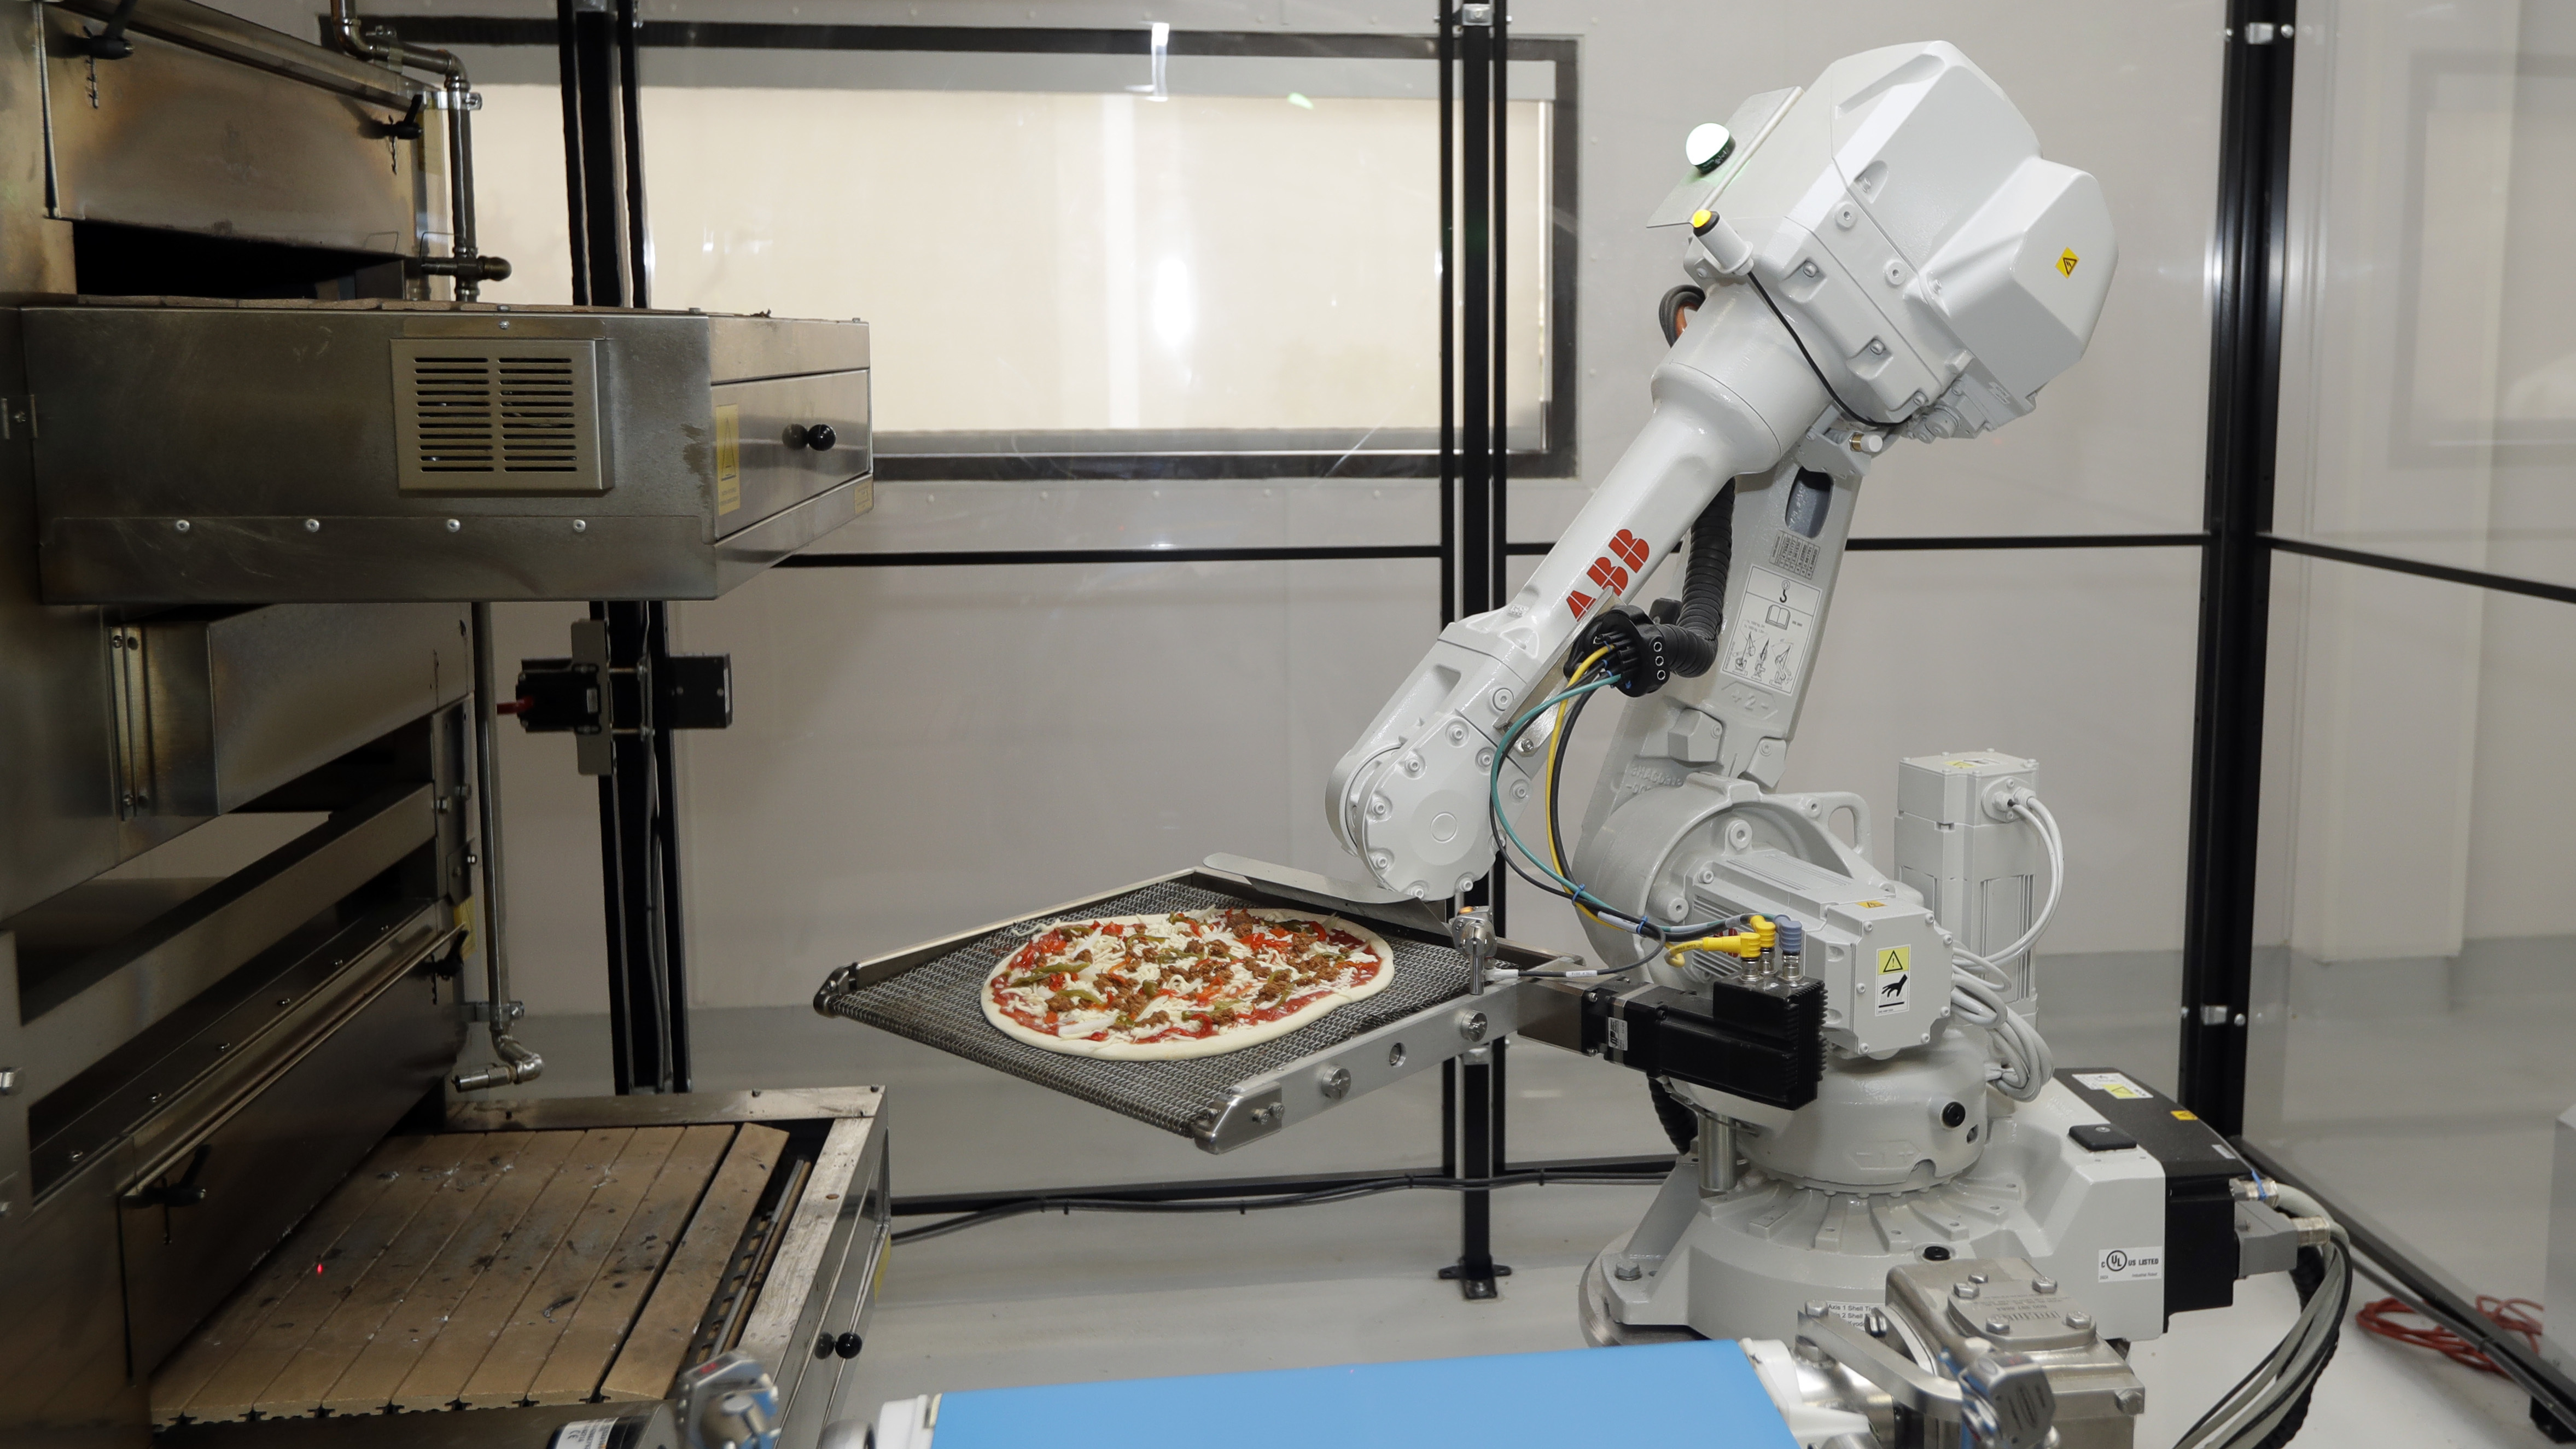 In this Monday, Aug. 29, 2016 photo, a robot places a pizza into an oven at Zume Pizza in Mountain View, Calif. The startup, which began delivery in April, is using intelligent machines to grab a slice of the multi-billion-dollar pizza delivery market. Zume is one of a growing number of food-tech firms seeking to disrupt the restaurant industry with software and robots that let them cut costs, speed production and improve worker safety. (AP Photo/Marcio Jose Sanchez)